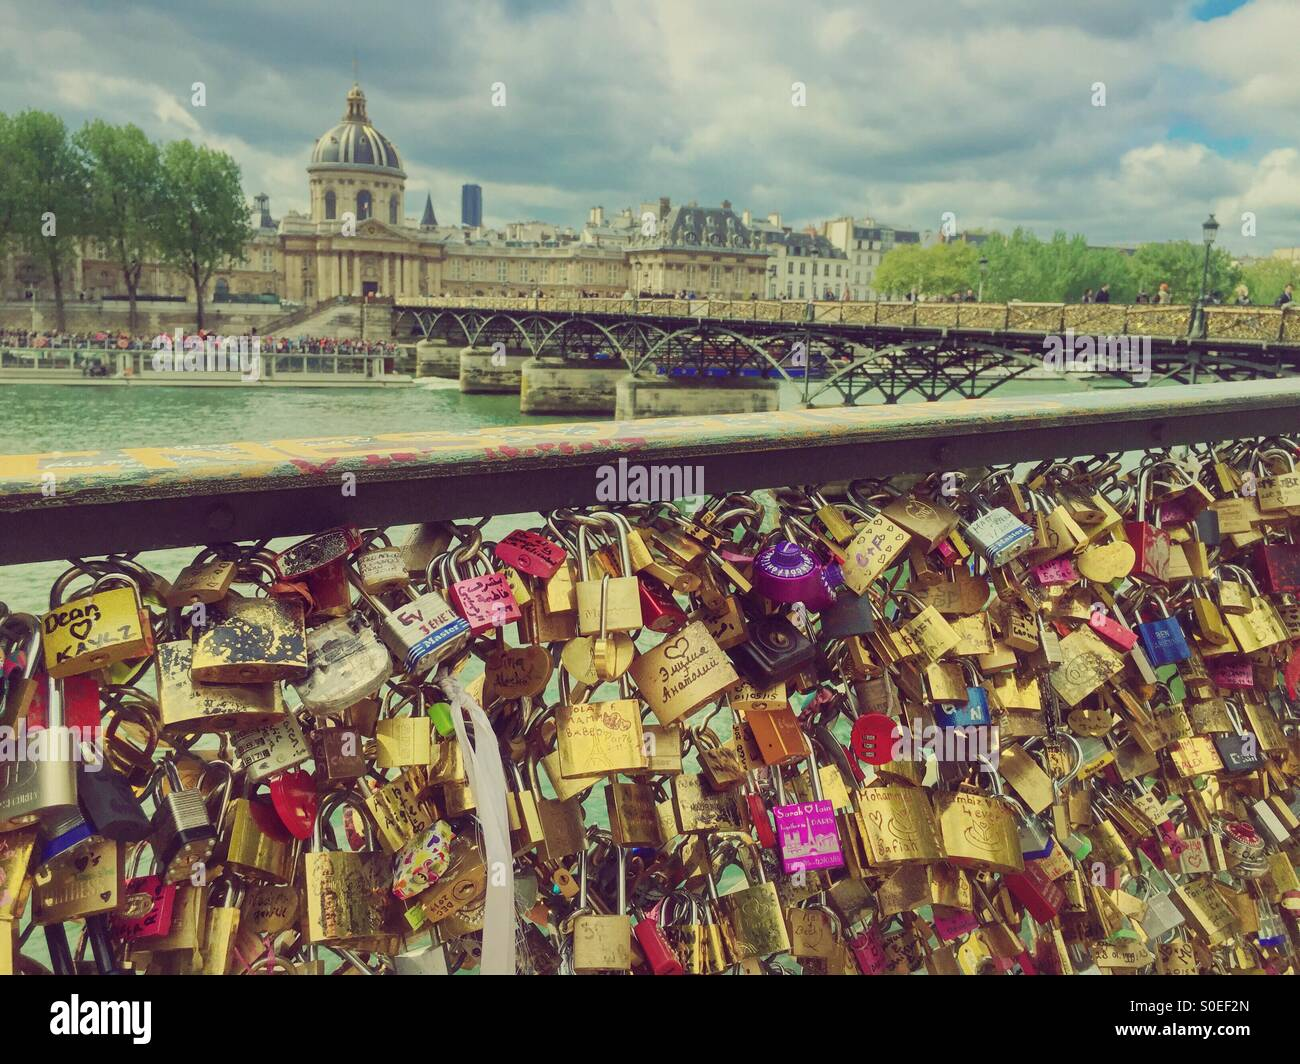 Pont des Arts or Passerelle des Arts, a pedestrian bridge in Paris, France with side panels covered in padlocksStock Photo